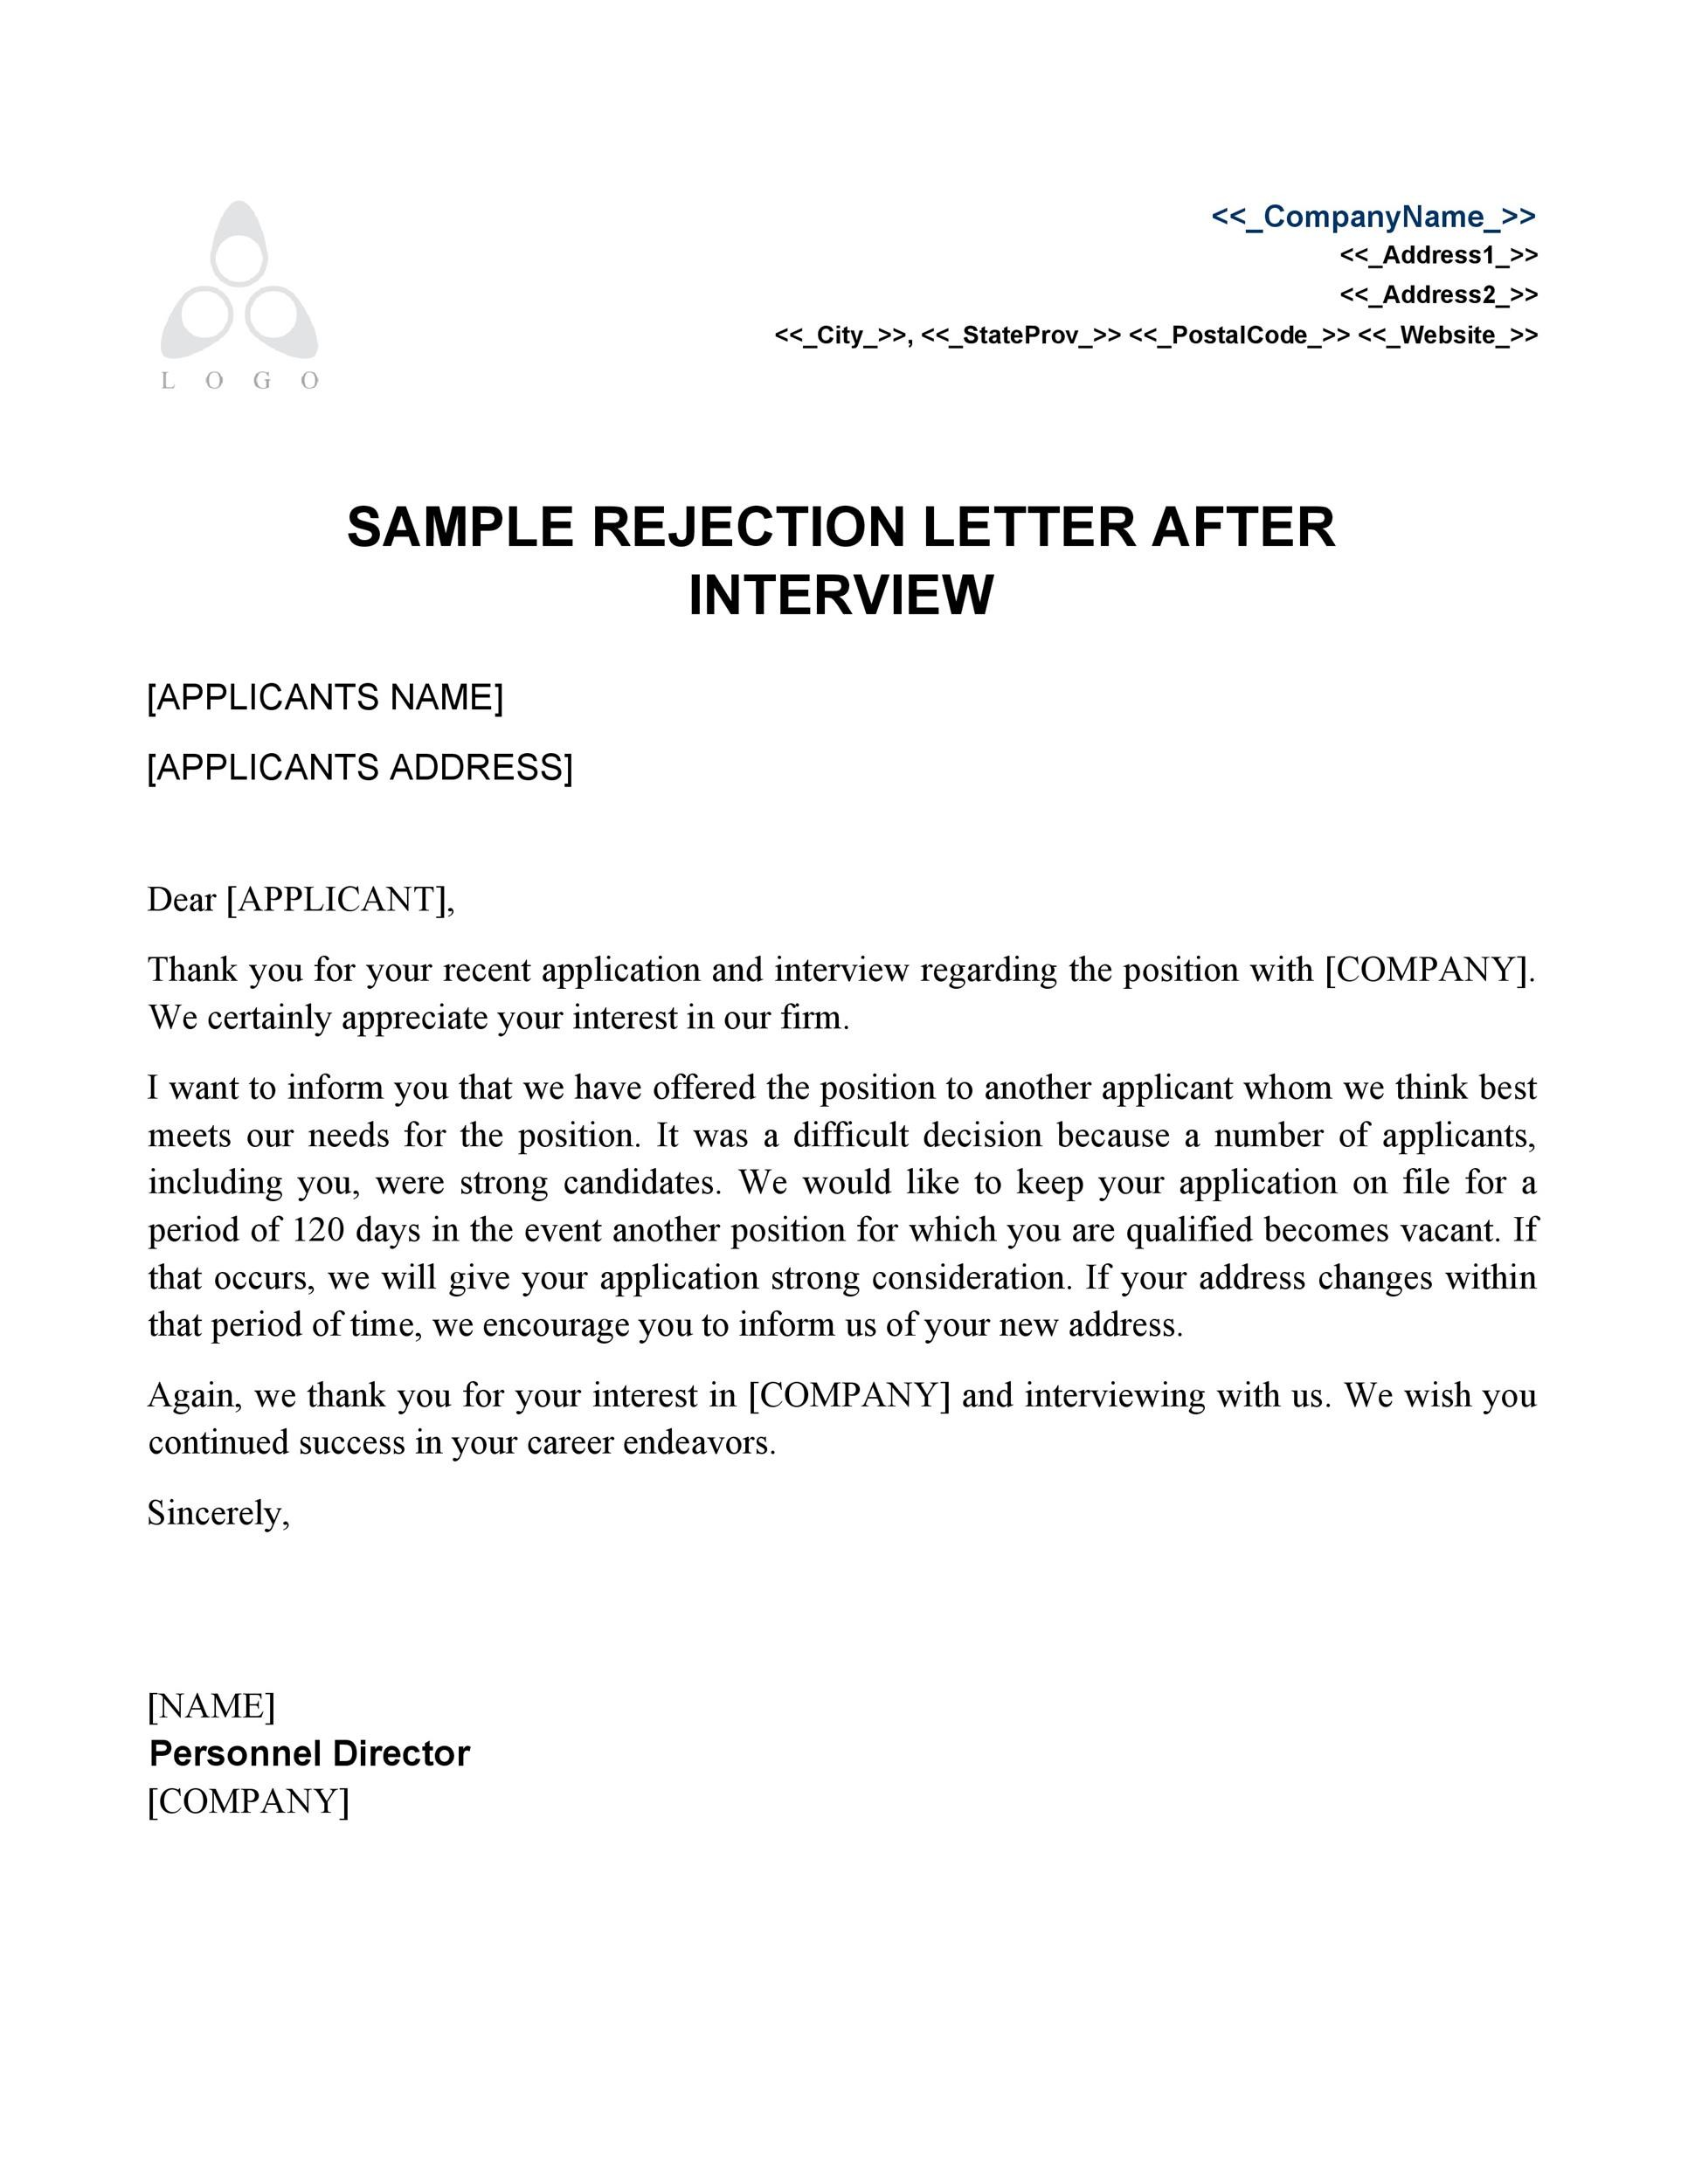 Rejected Interview Thank You Letter from templatelab.com